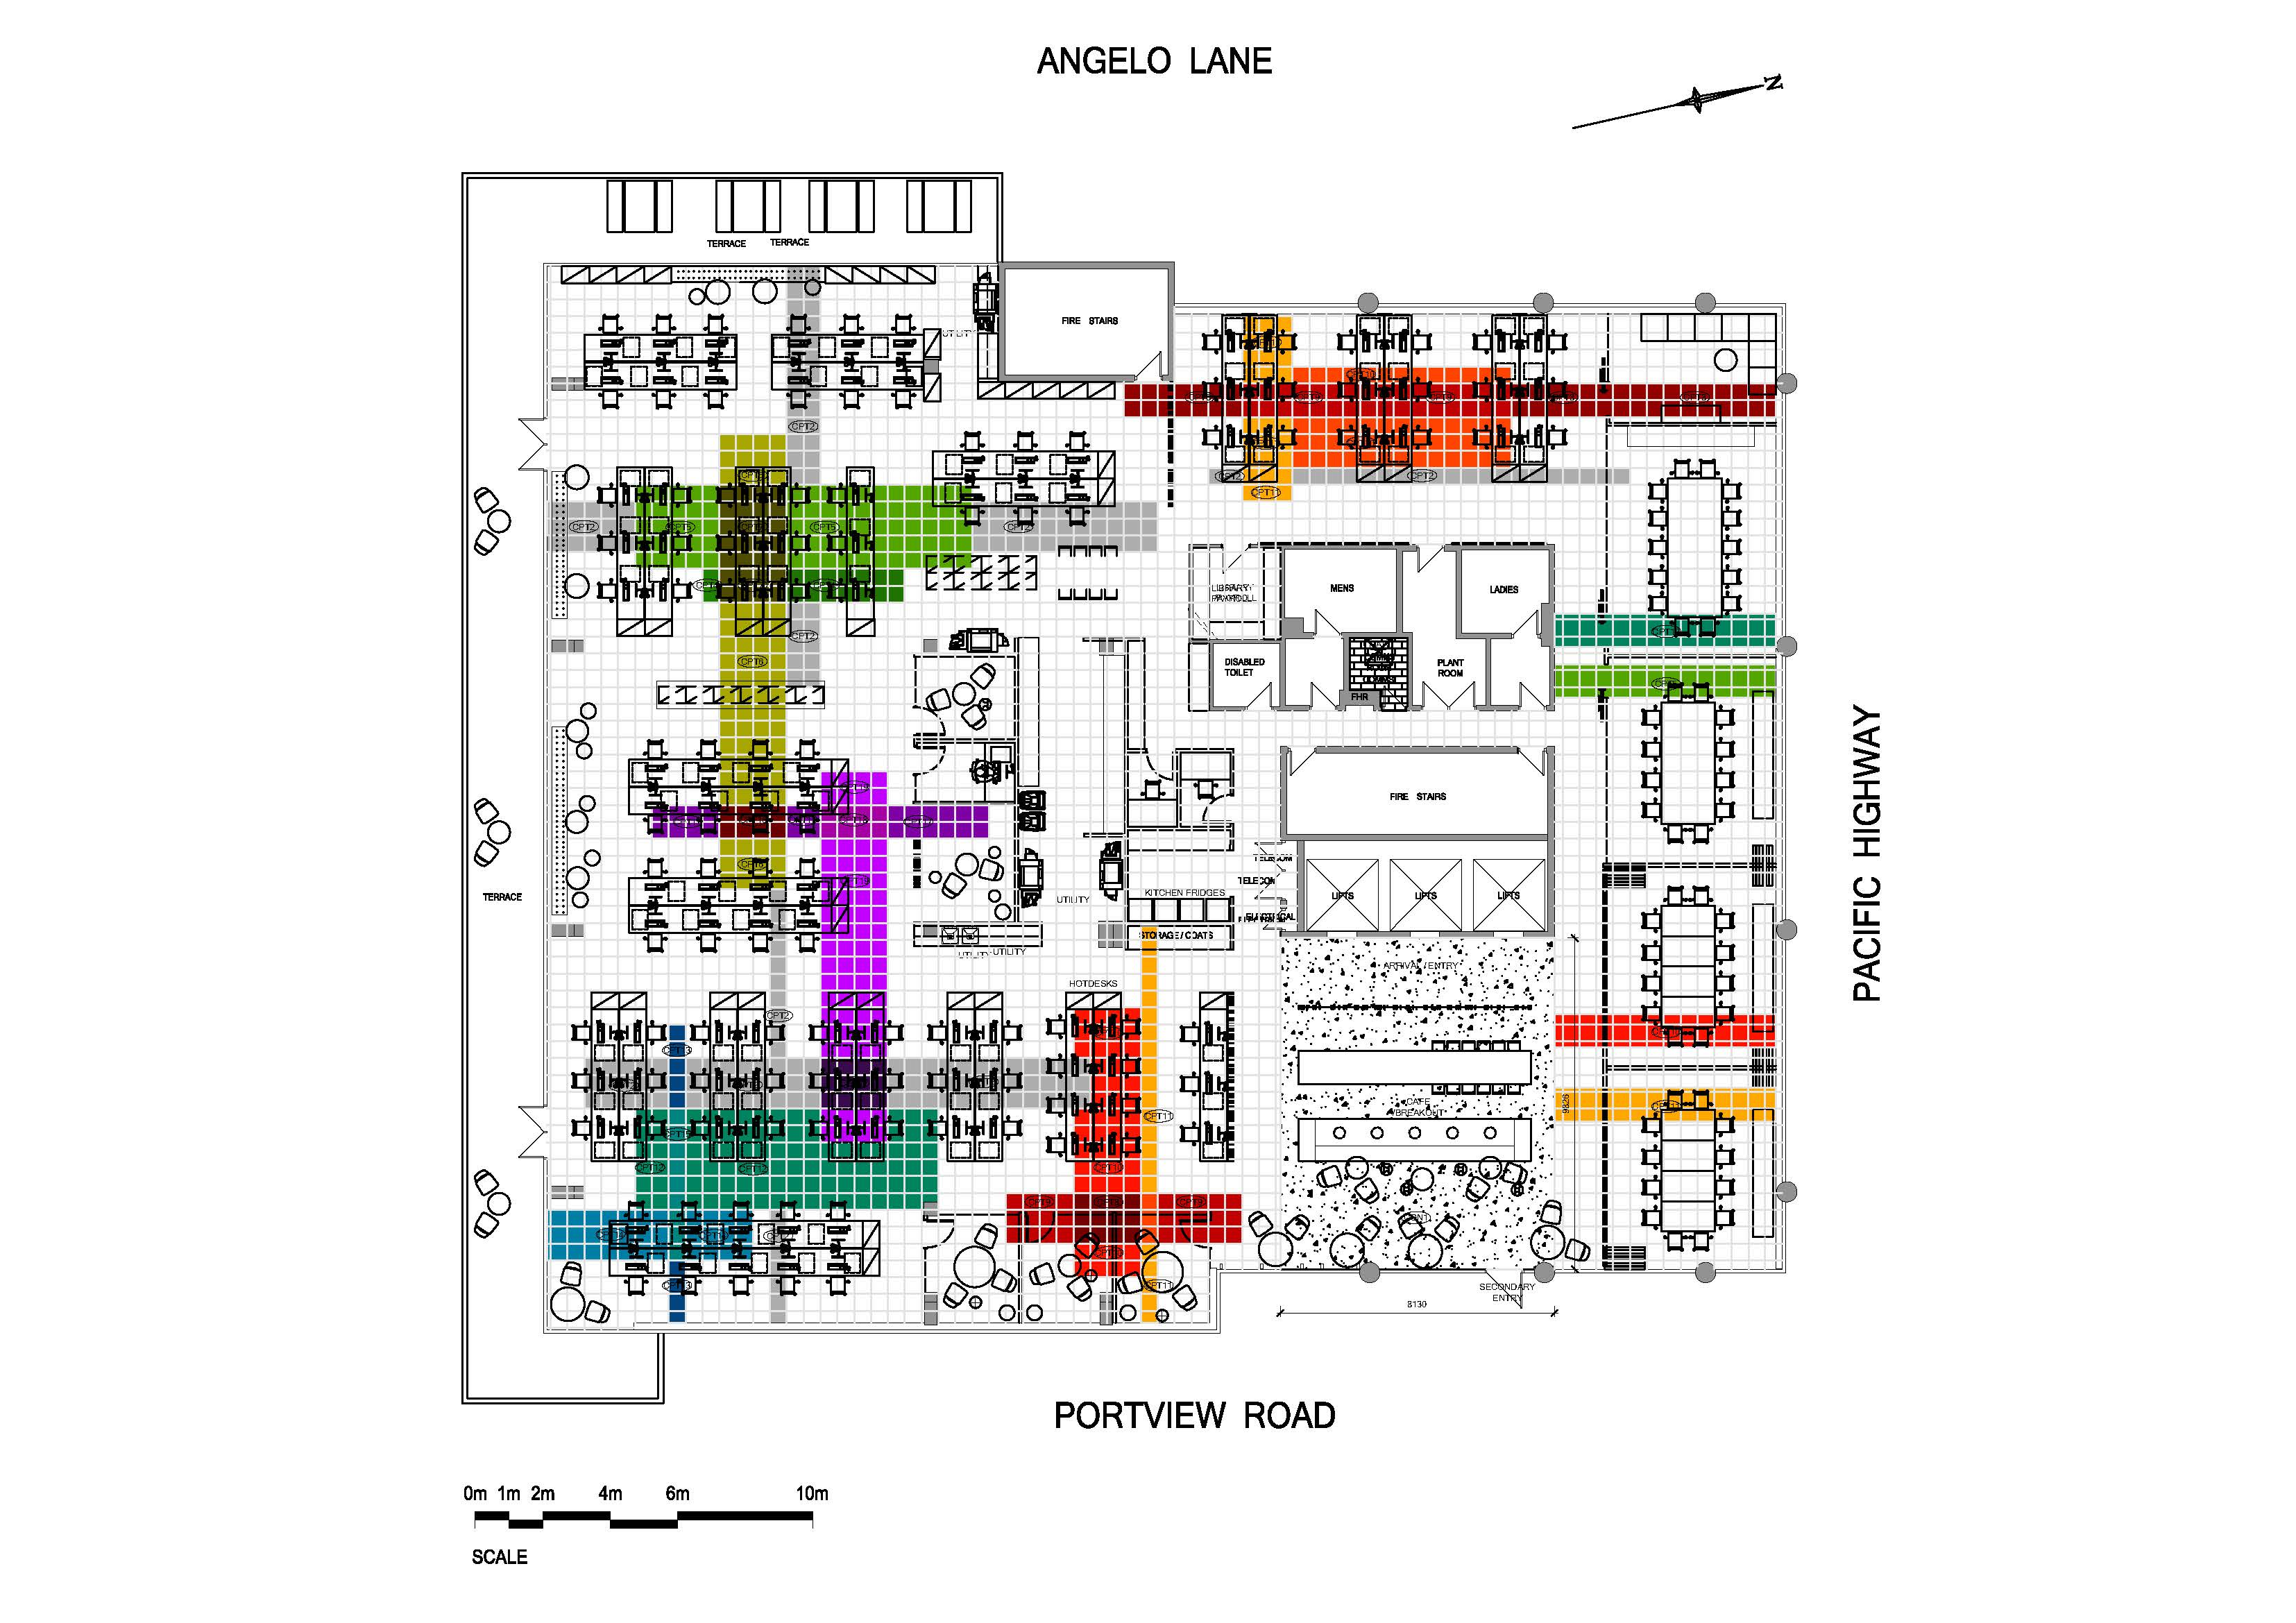 1151 - floor finishes plan